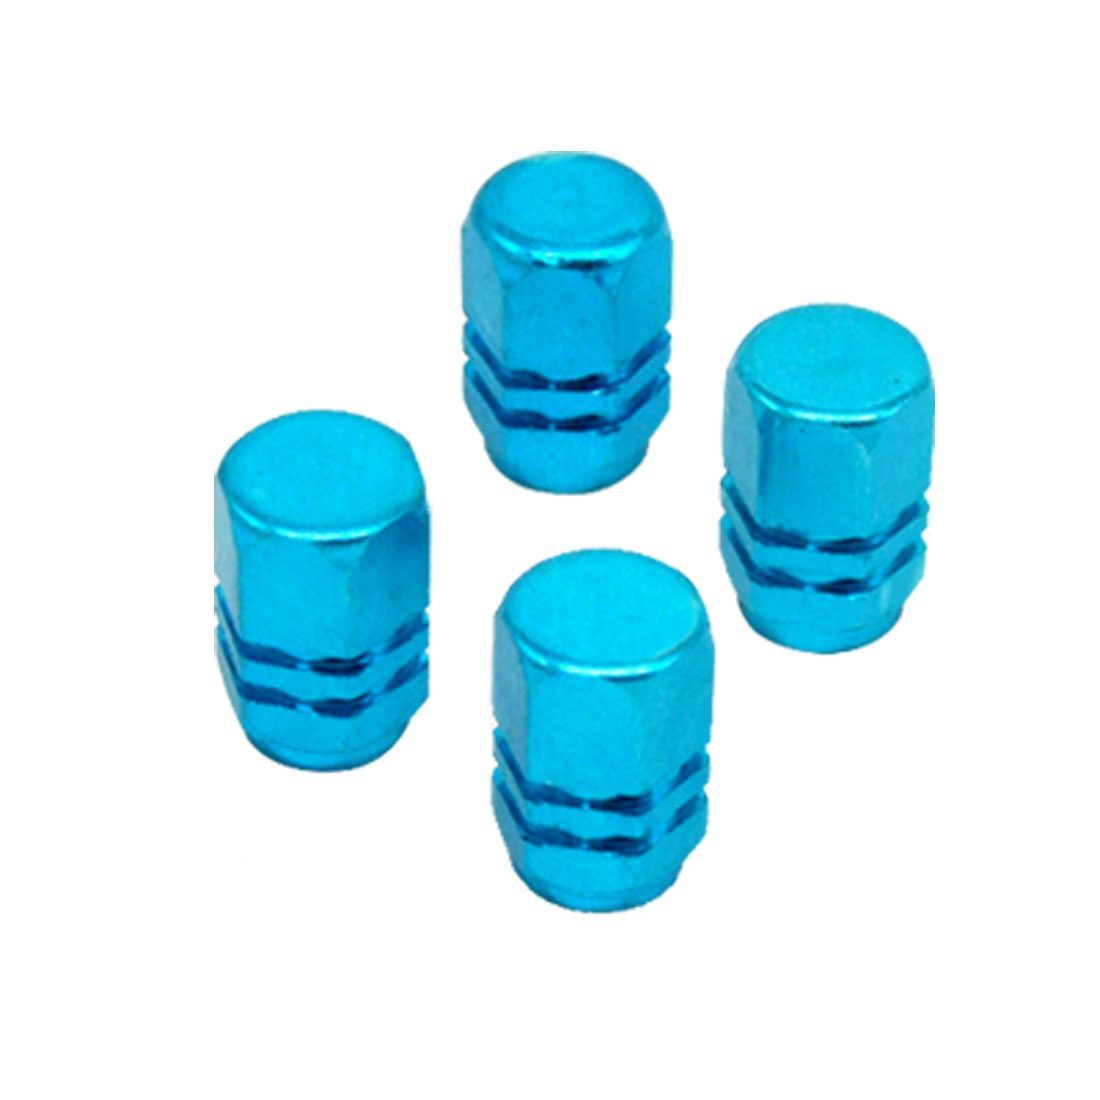 4 PCS Tyre Tire Valve Stem Covers Caps Blue for Car Auto